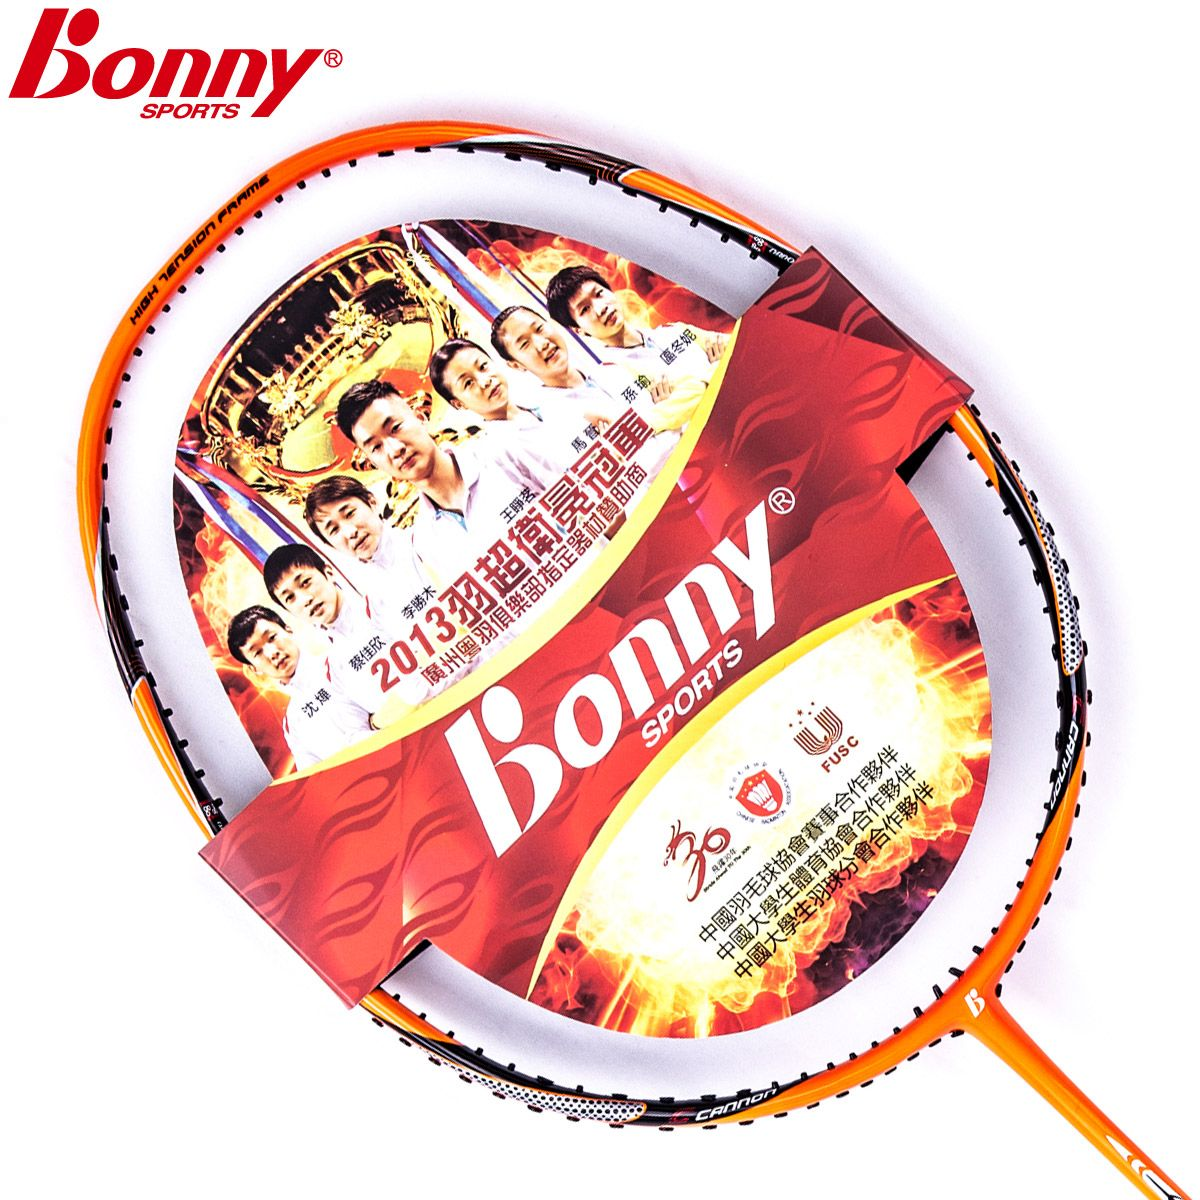 Genuine bonny bonny little cannon 2015Y pro200 narrow border hornet offensive and defensive racket buy one get three